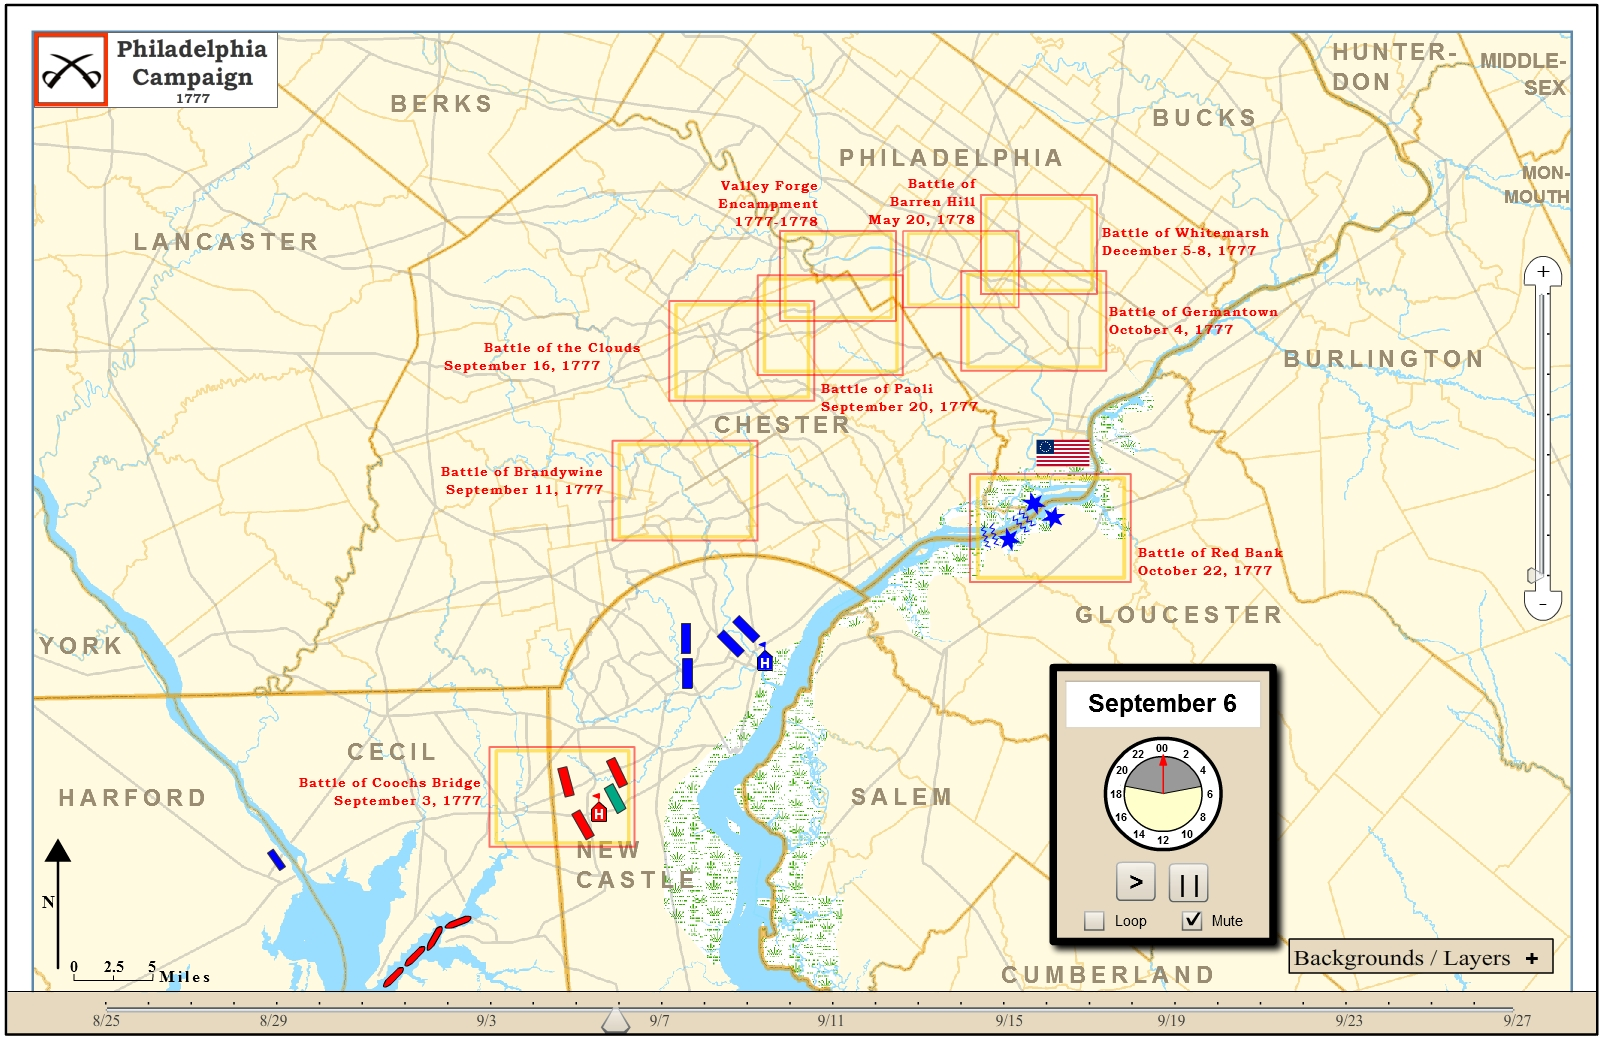 war of 1812 map with Westernheritagemapping on File Colonisation 1812 together with IMG 4586 s2a likewise Otmena krepostn prava 2v as well 3936154182 together with Showthread.